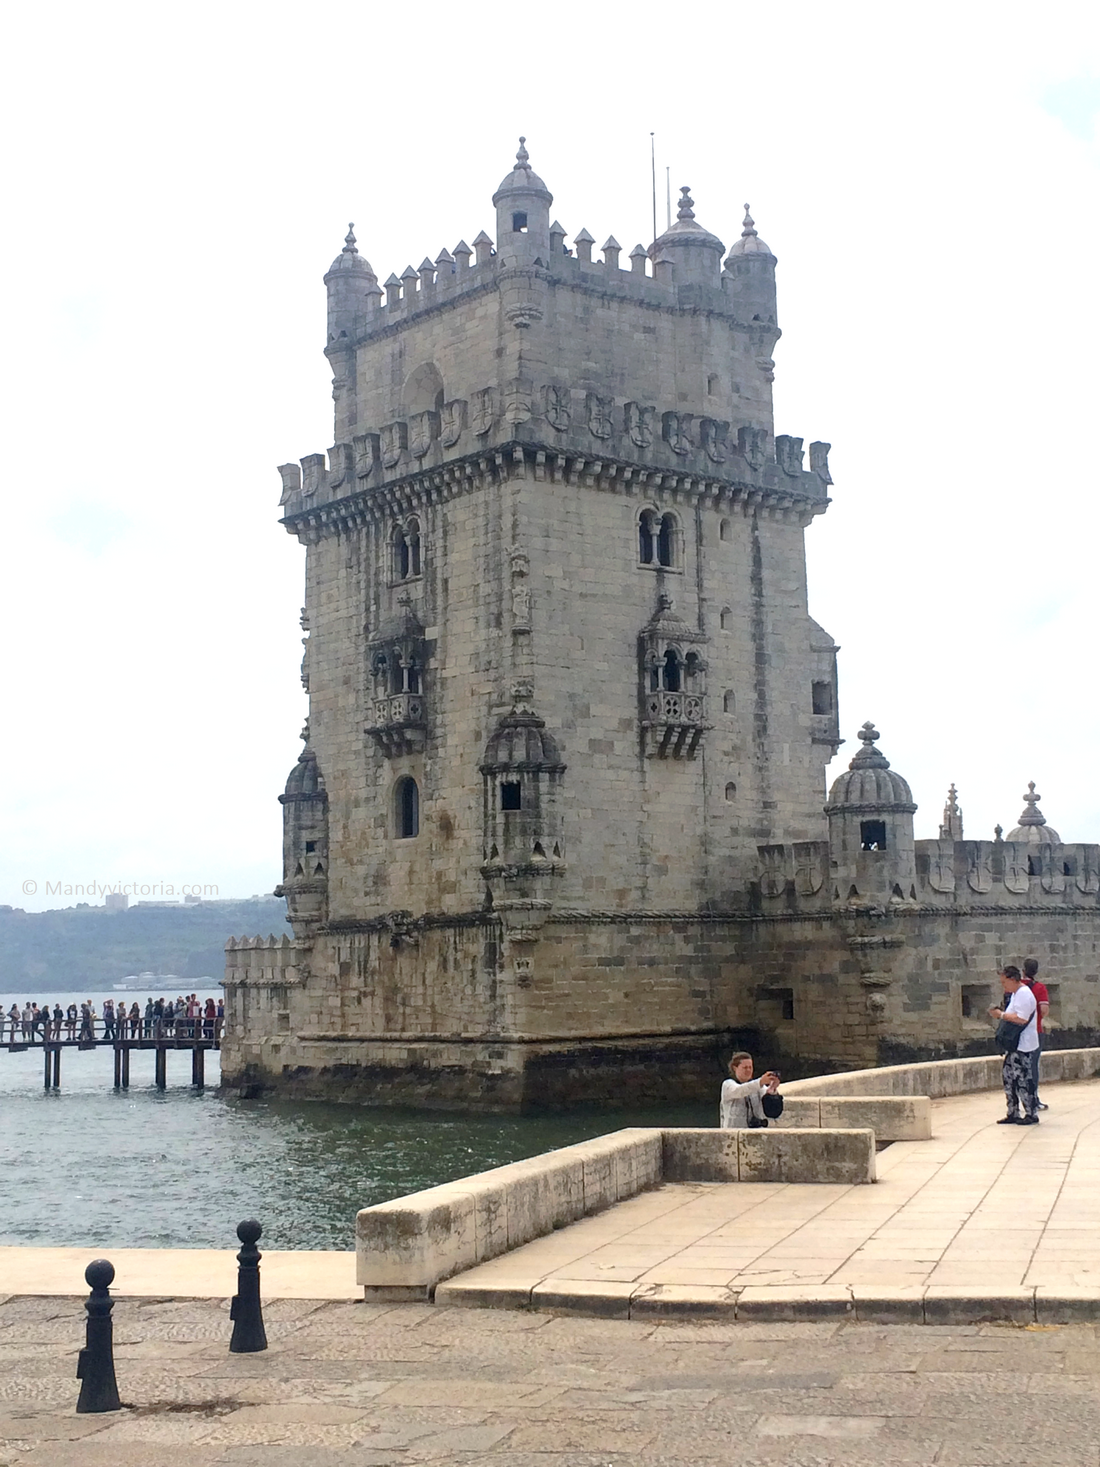 3. torre belem picture by mandyvictoria